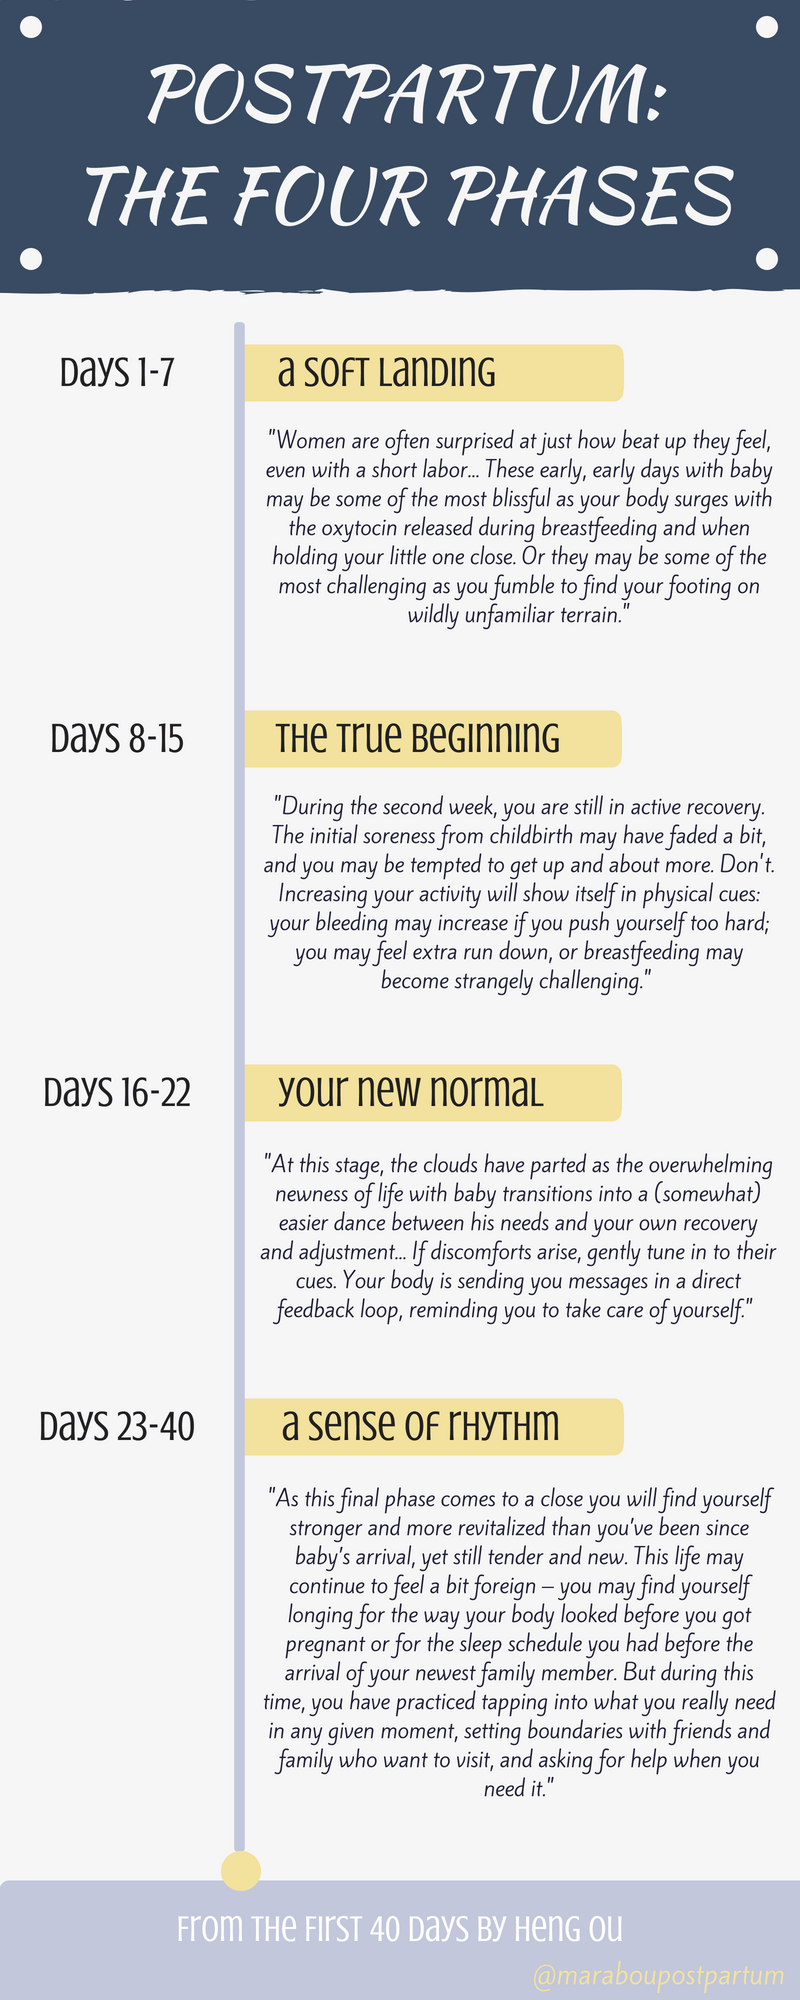 The 4 Phases of the Postpartum Period